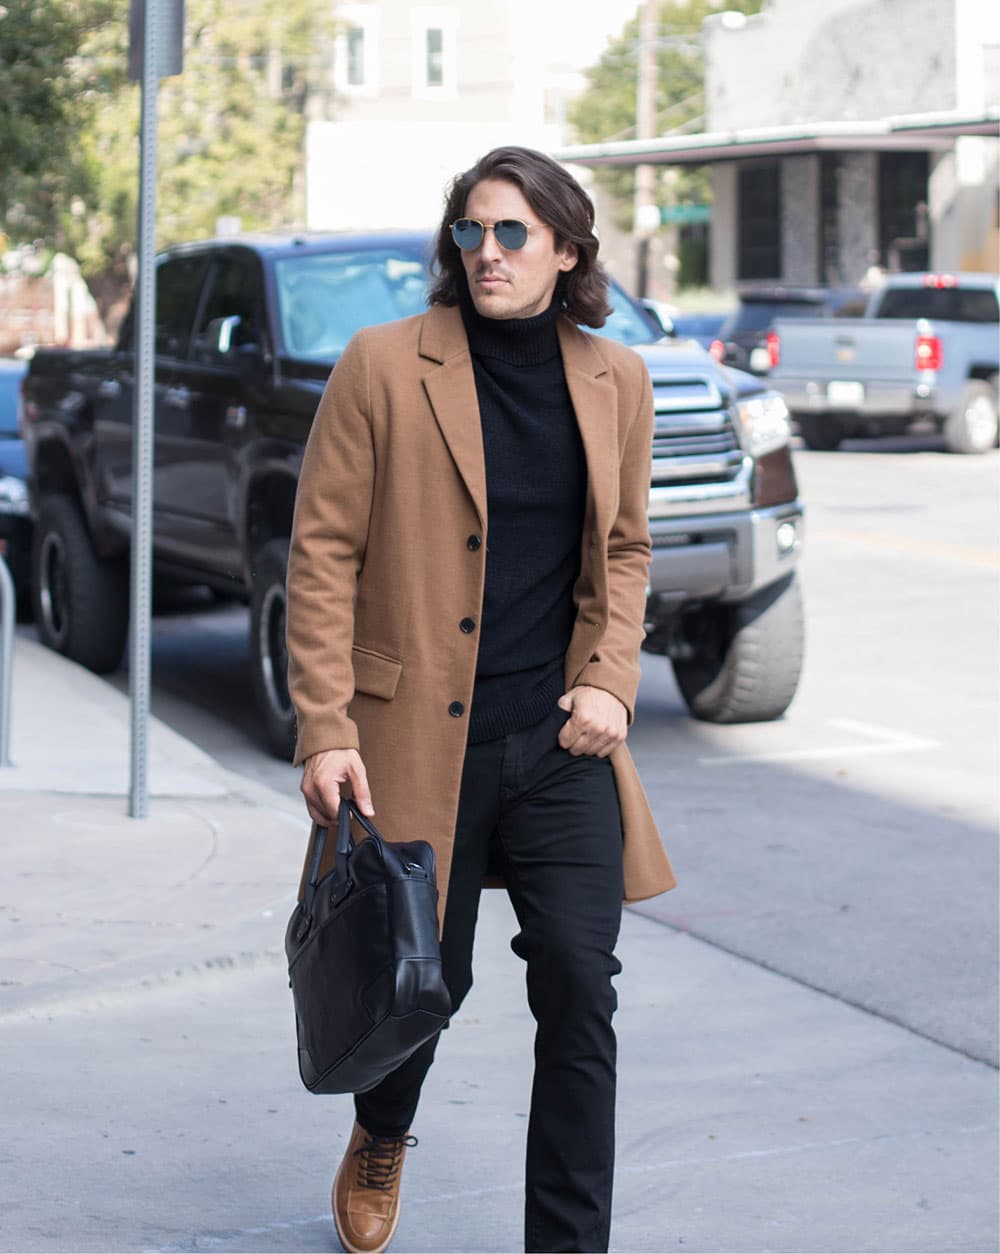 Camel Overcoat with Black Roll Top Sweater Black Jeans and Boots